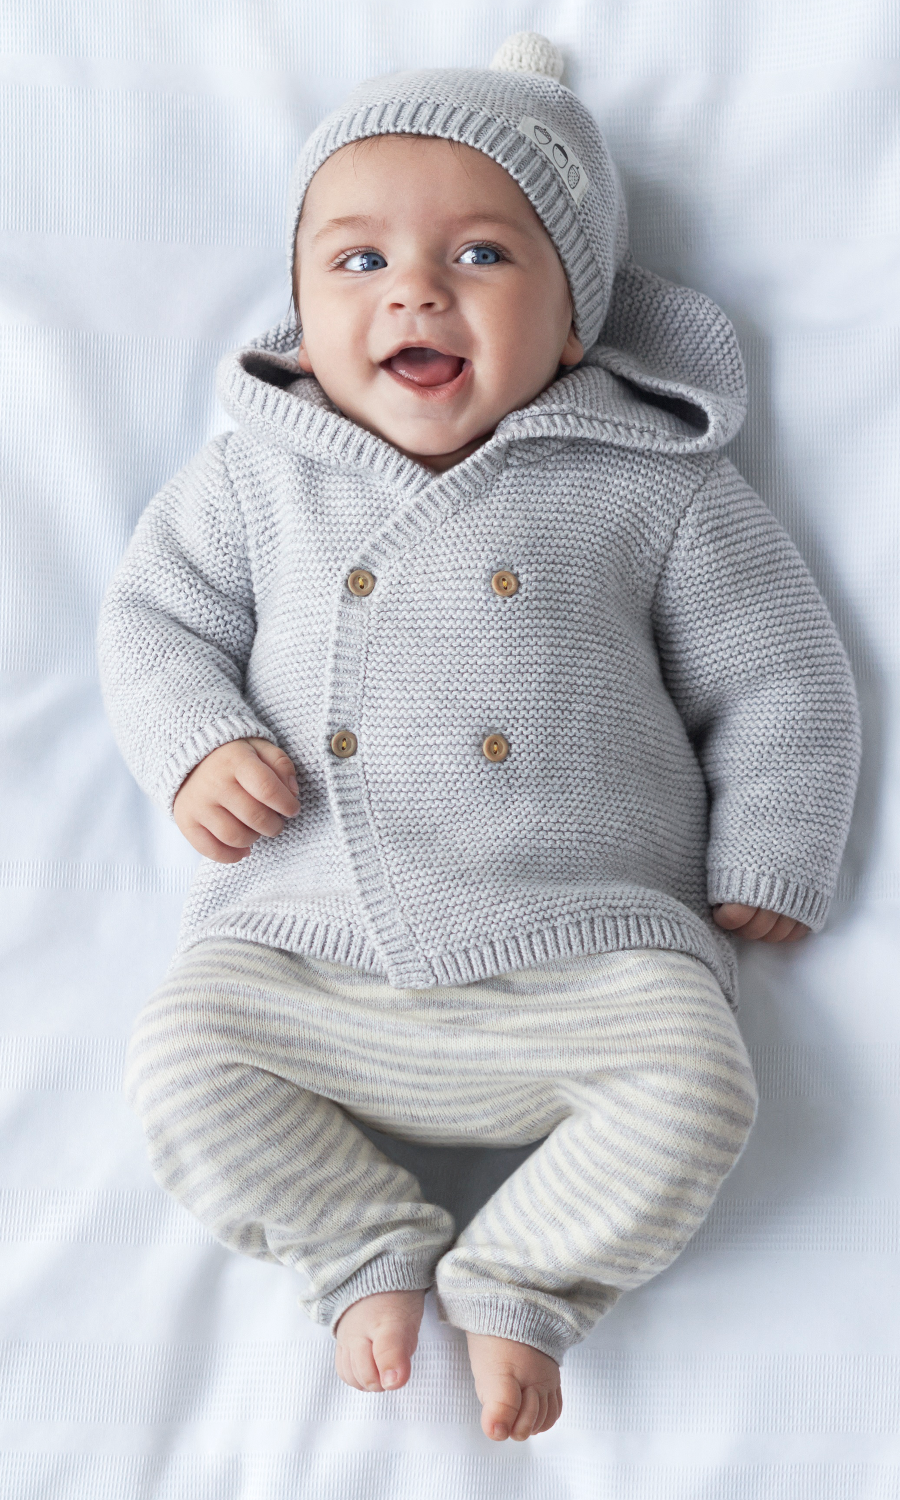 Babykleding Newborn.H M S Latest Collection Is Also Its Tiniest Baby Baby Jongen